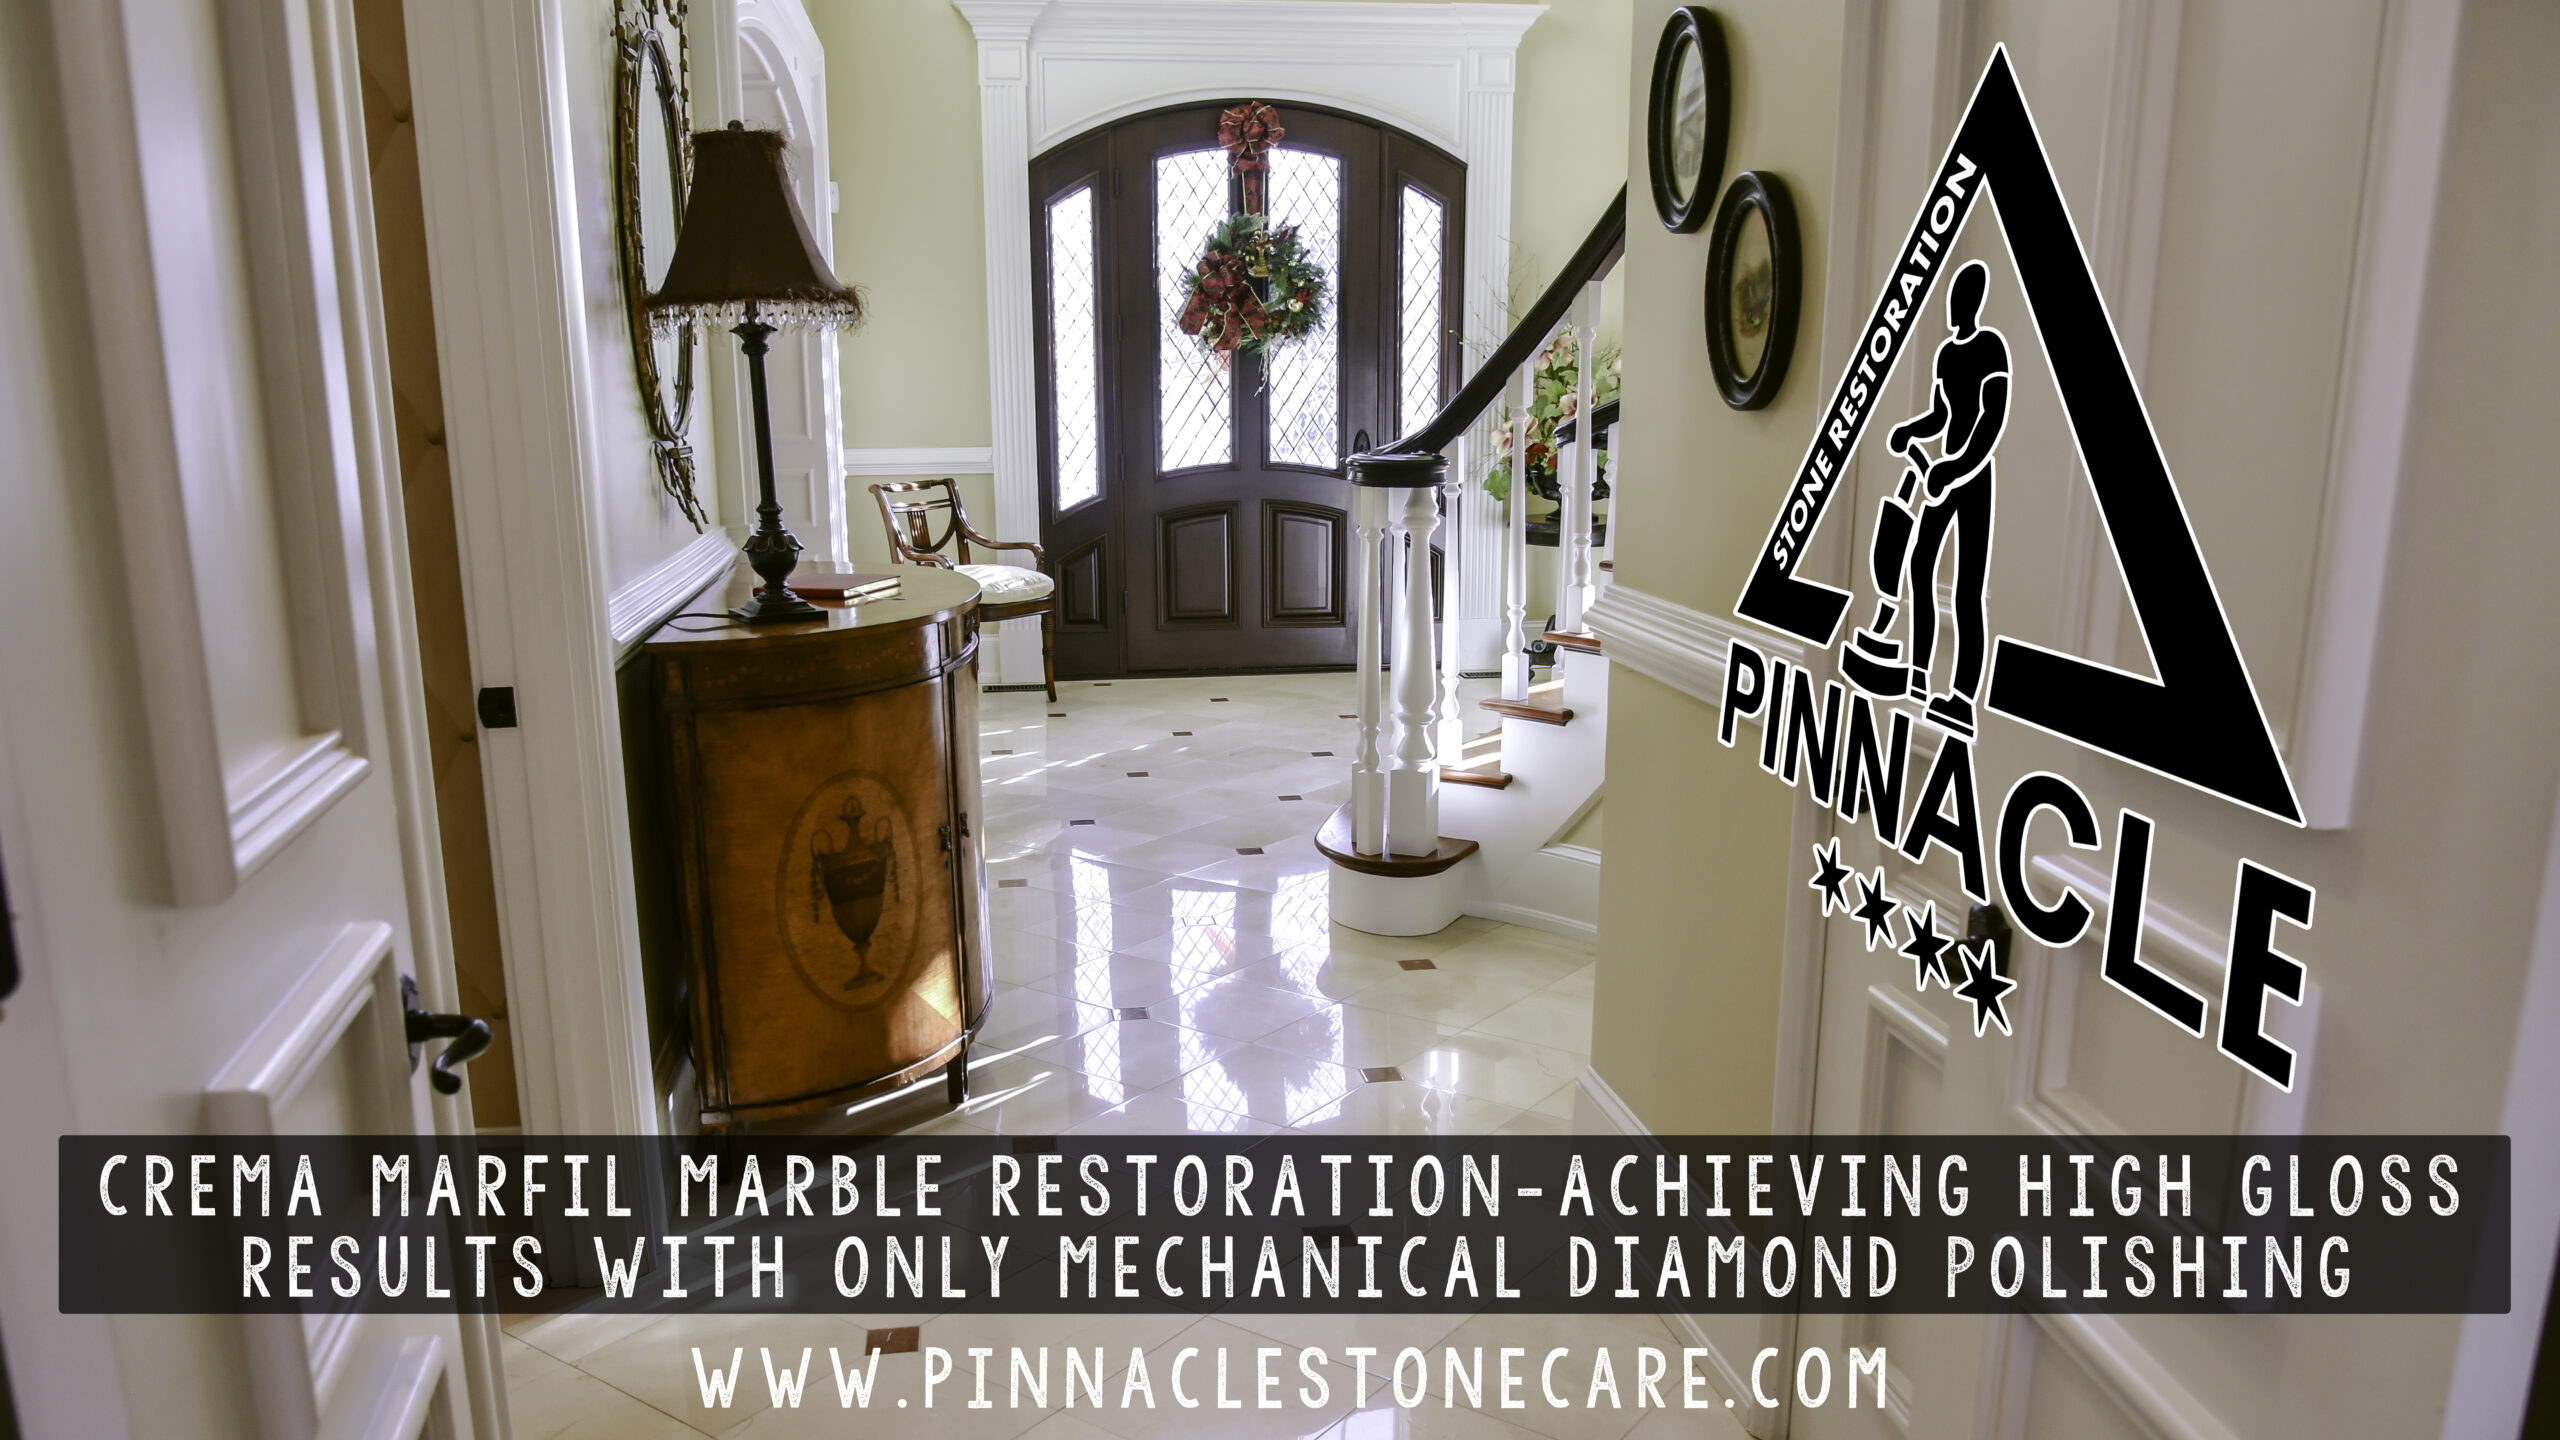 CREMA MARFIL MARBLE FLOOR RESTORATION – HIGH GLOSS RESULTS WITH ONLY MECHANICAL DIAMOND POLISHING STEPS